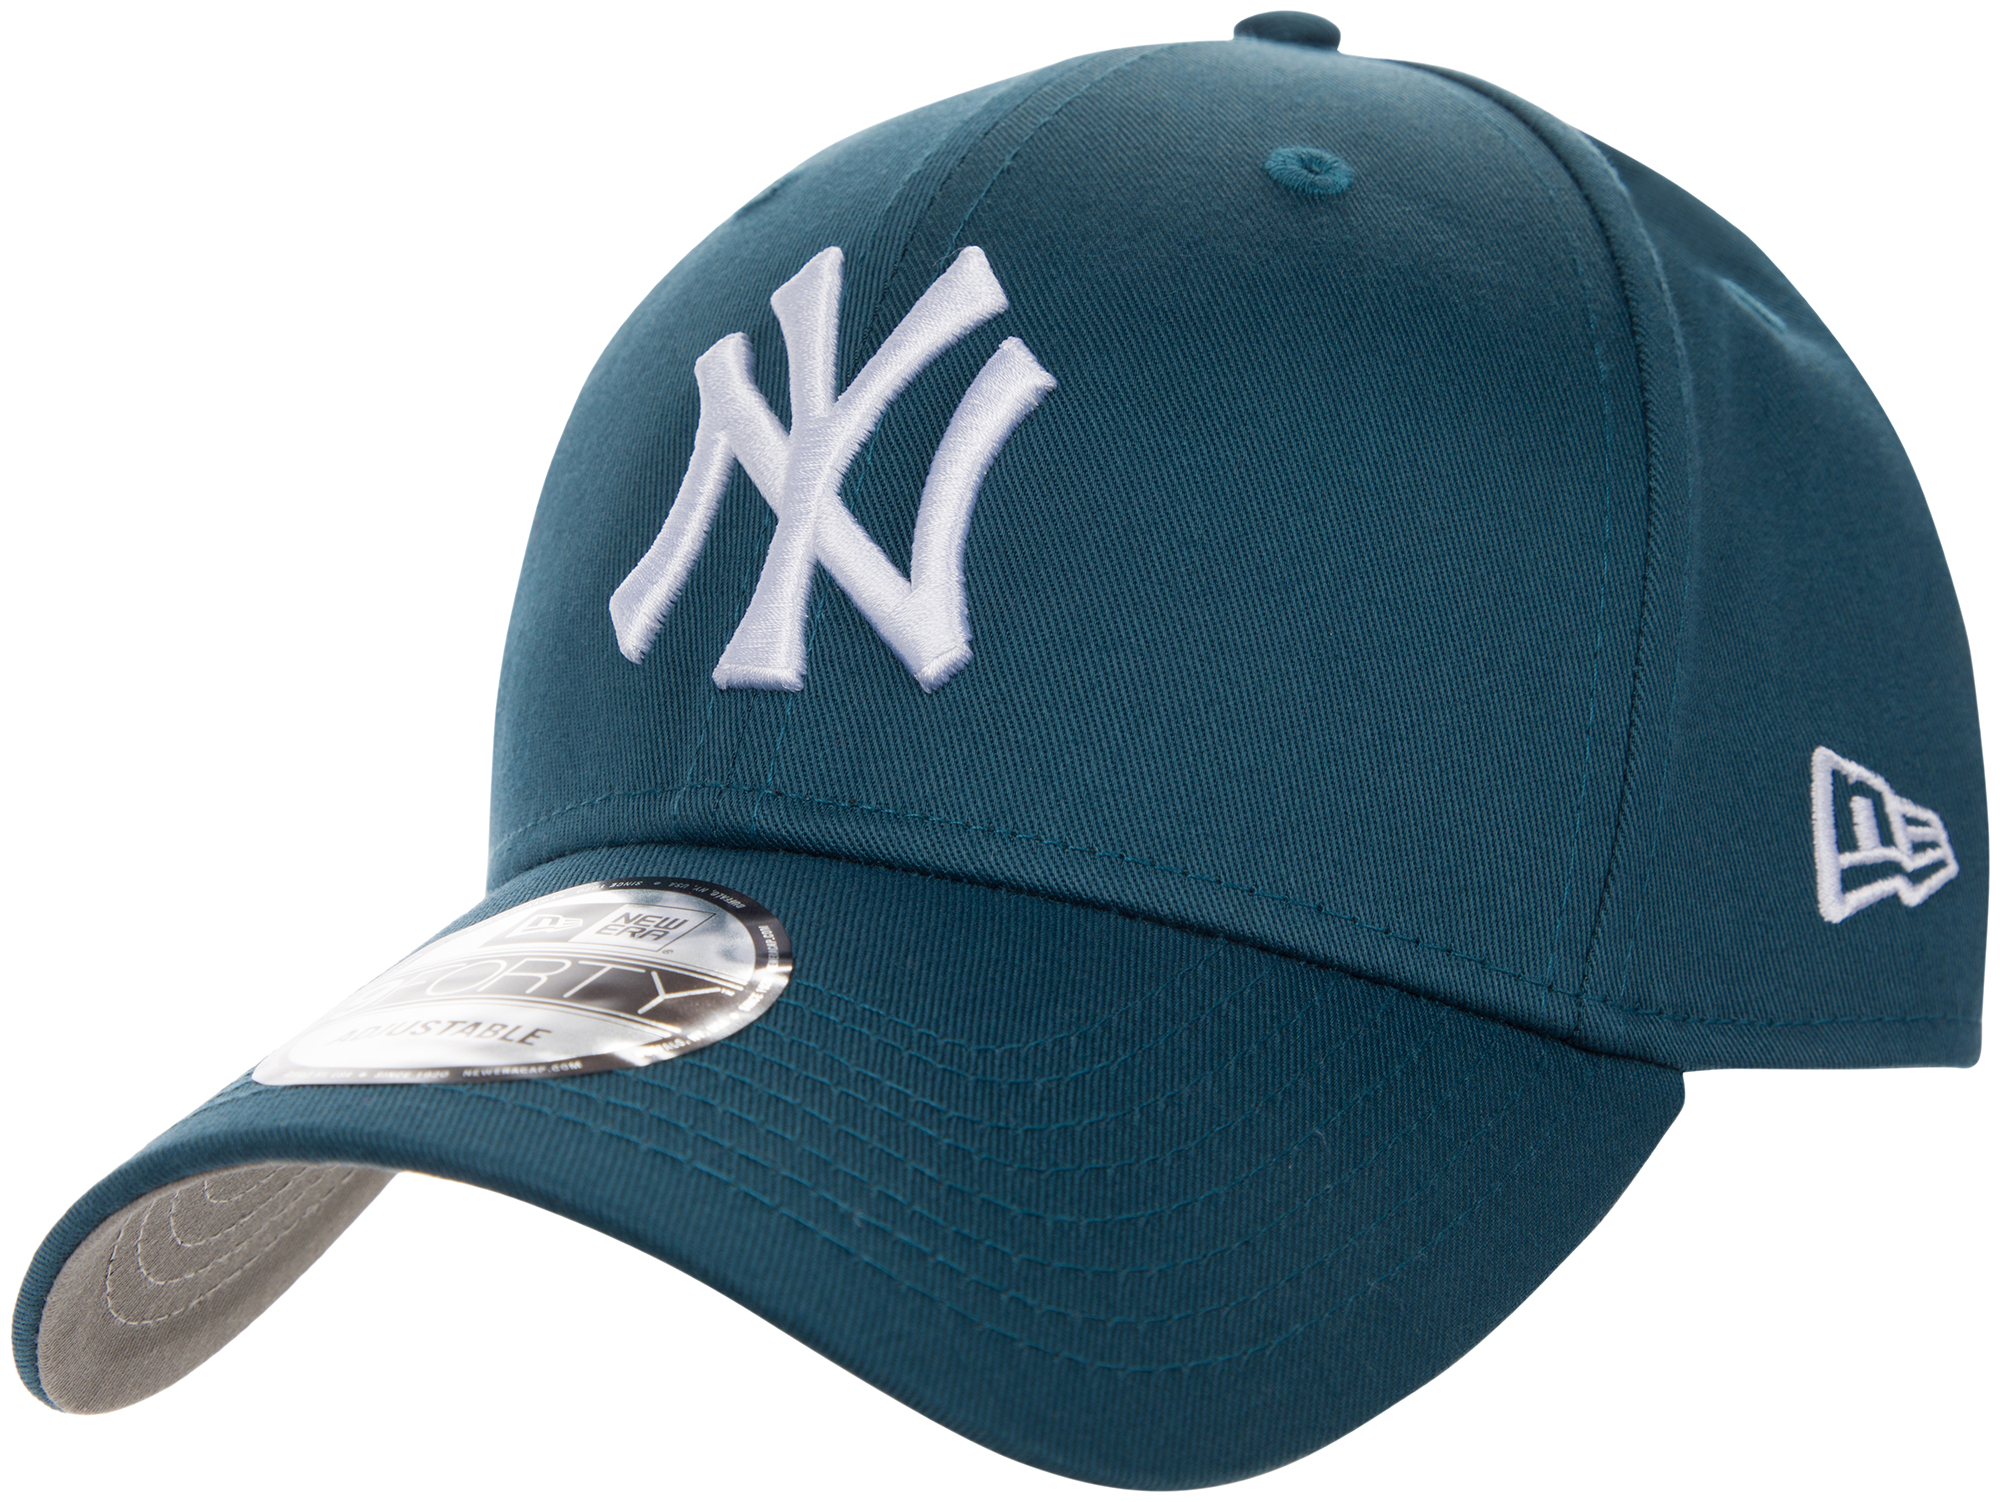 цена New Era Бейсболка New Era 9Forty New York Yankees онлайн в 2017 году